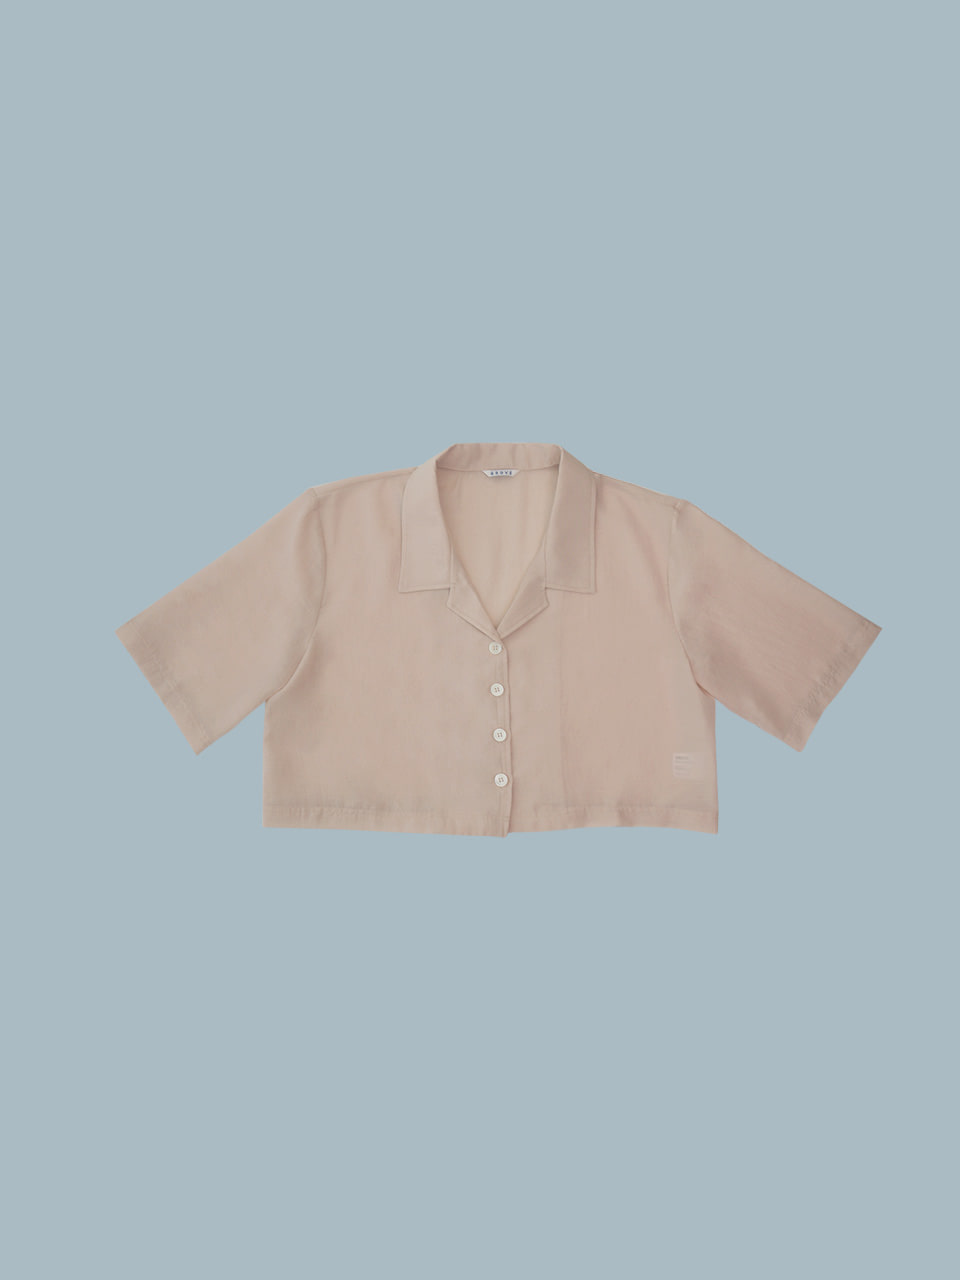 OR SHIRTS (BEIGE)